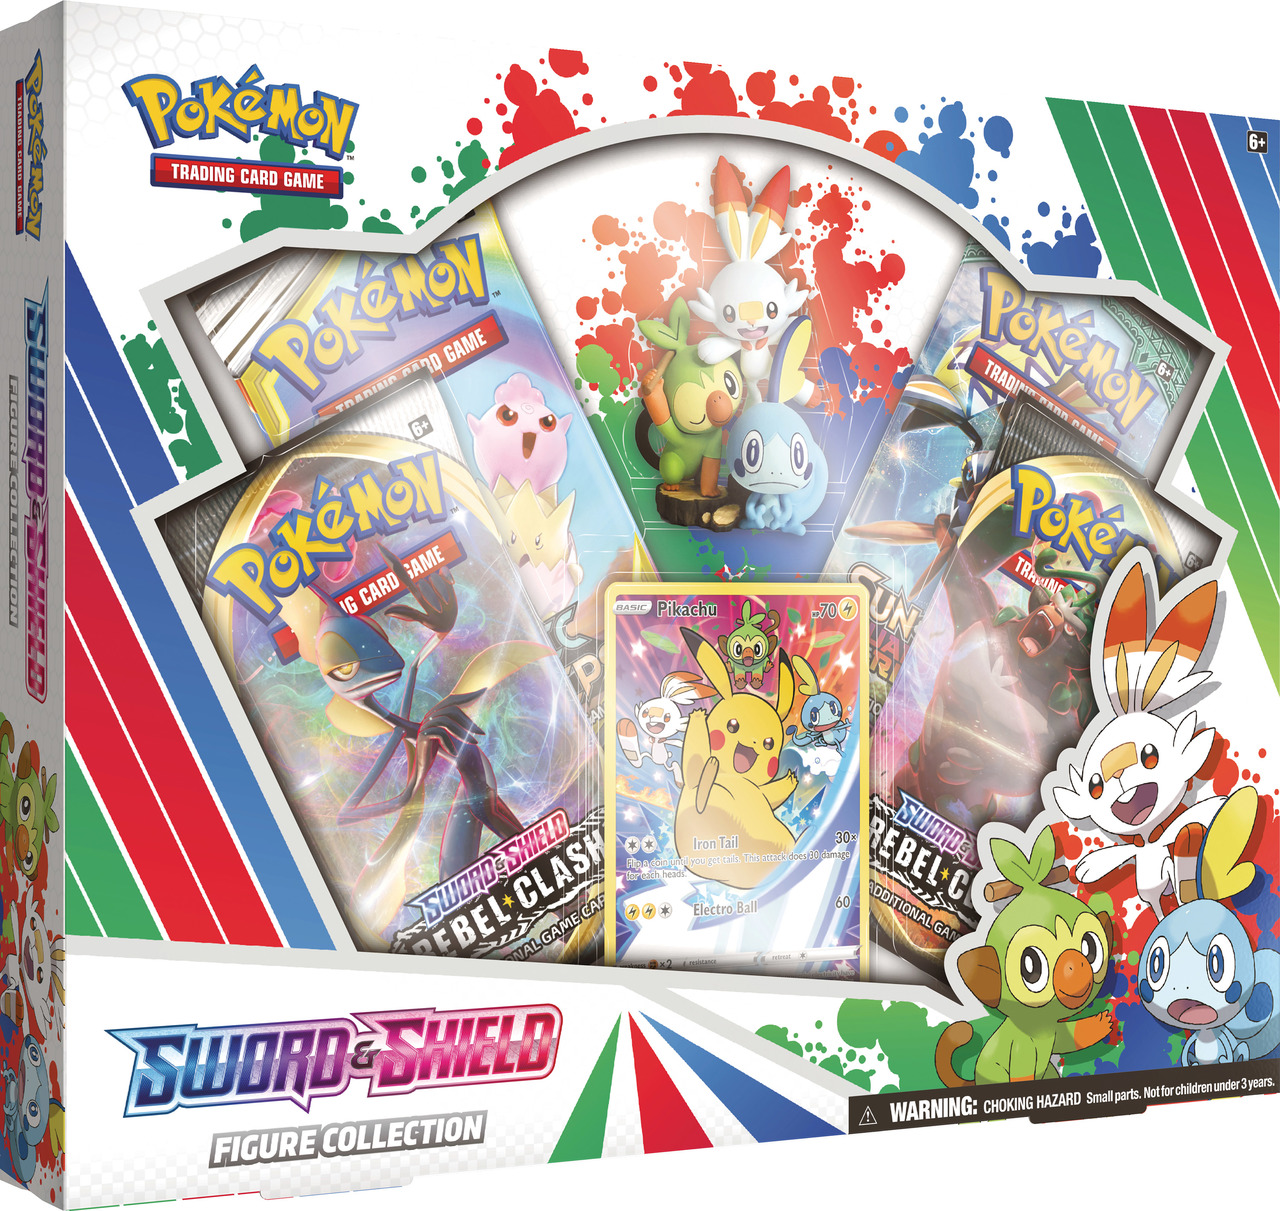 Pokémon TCG: Sword & Shield Figure Collection